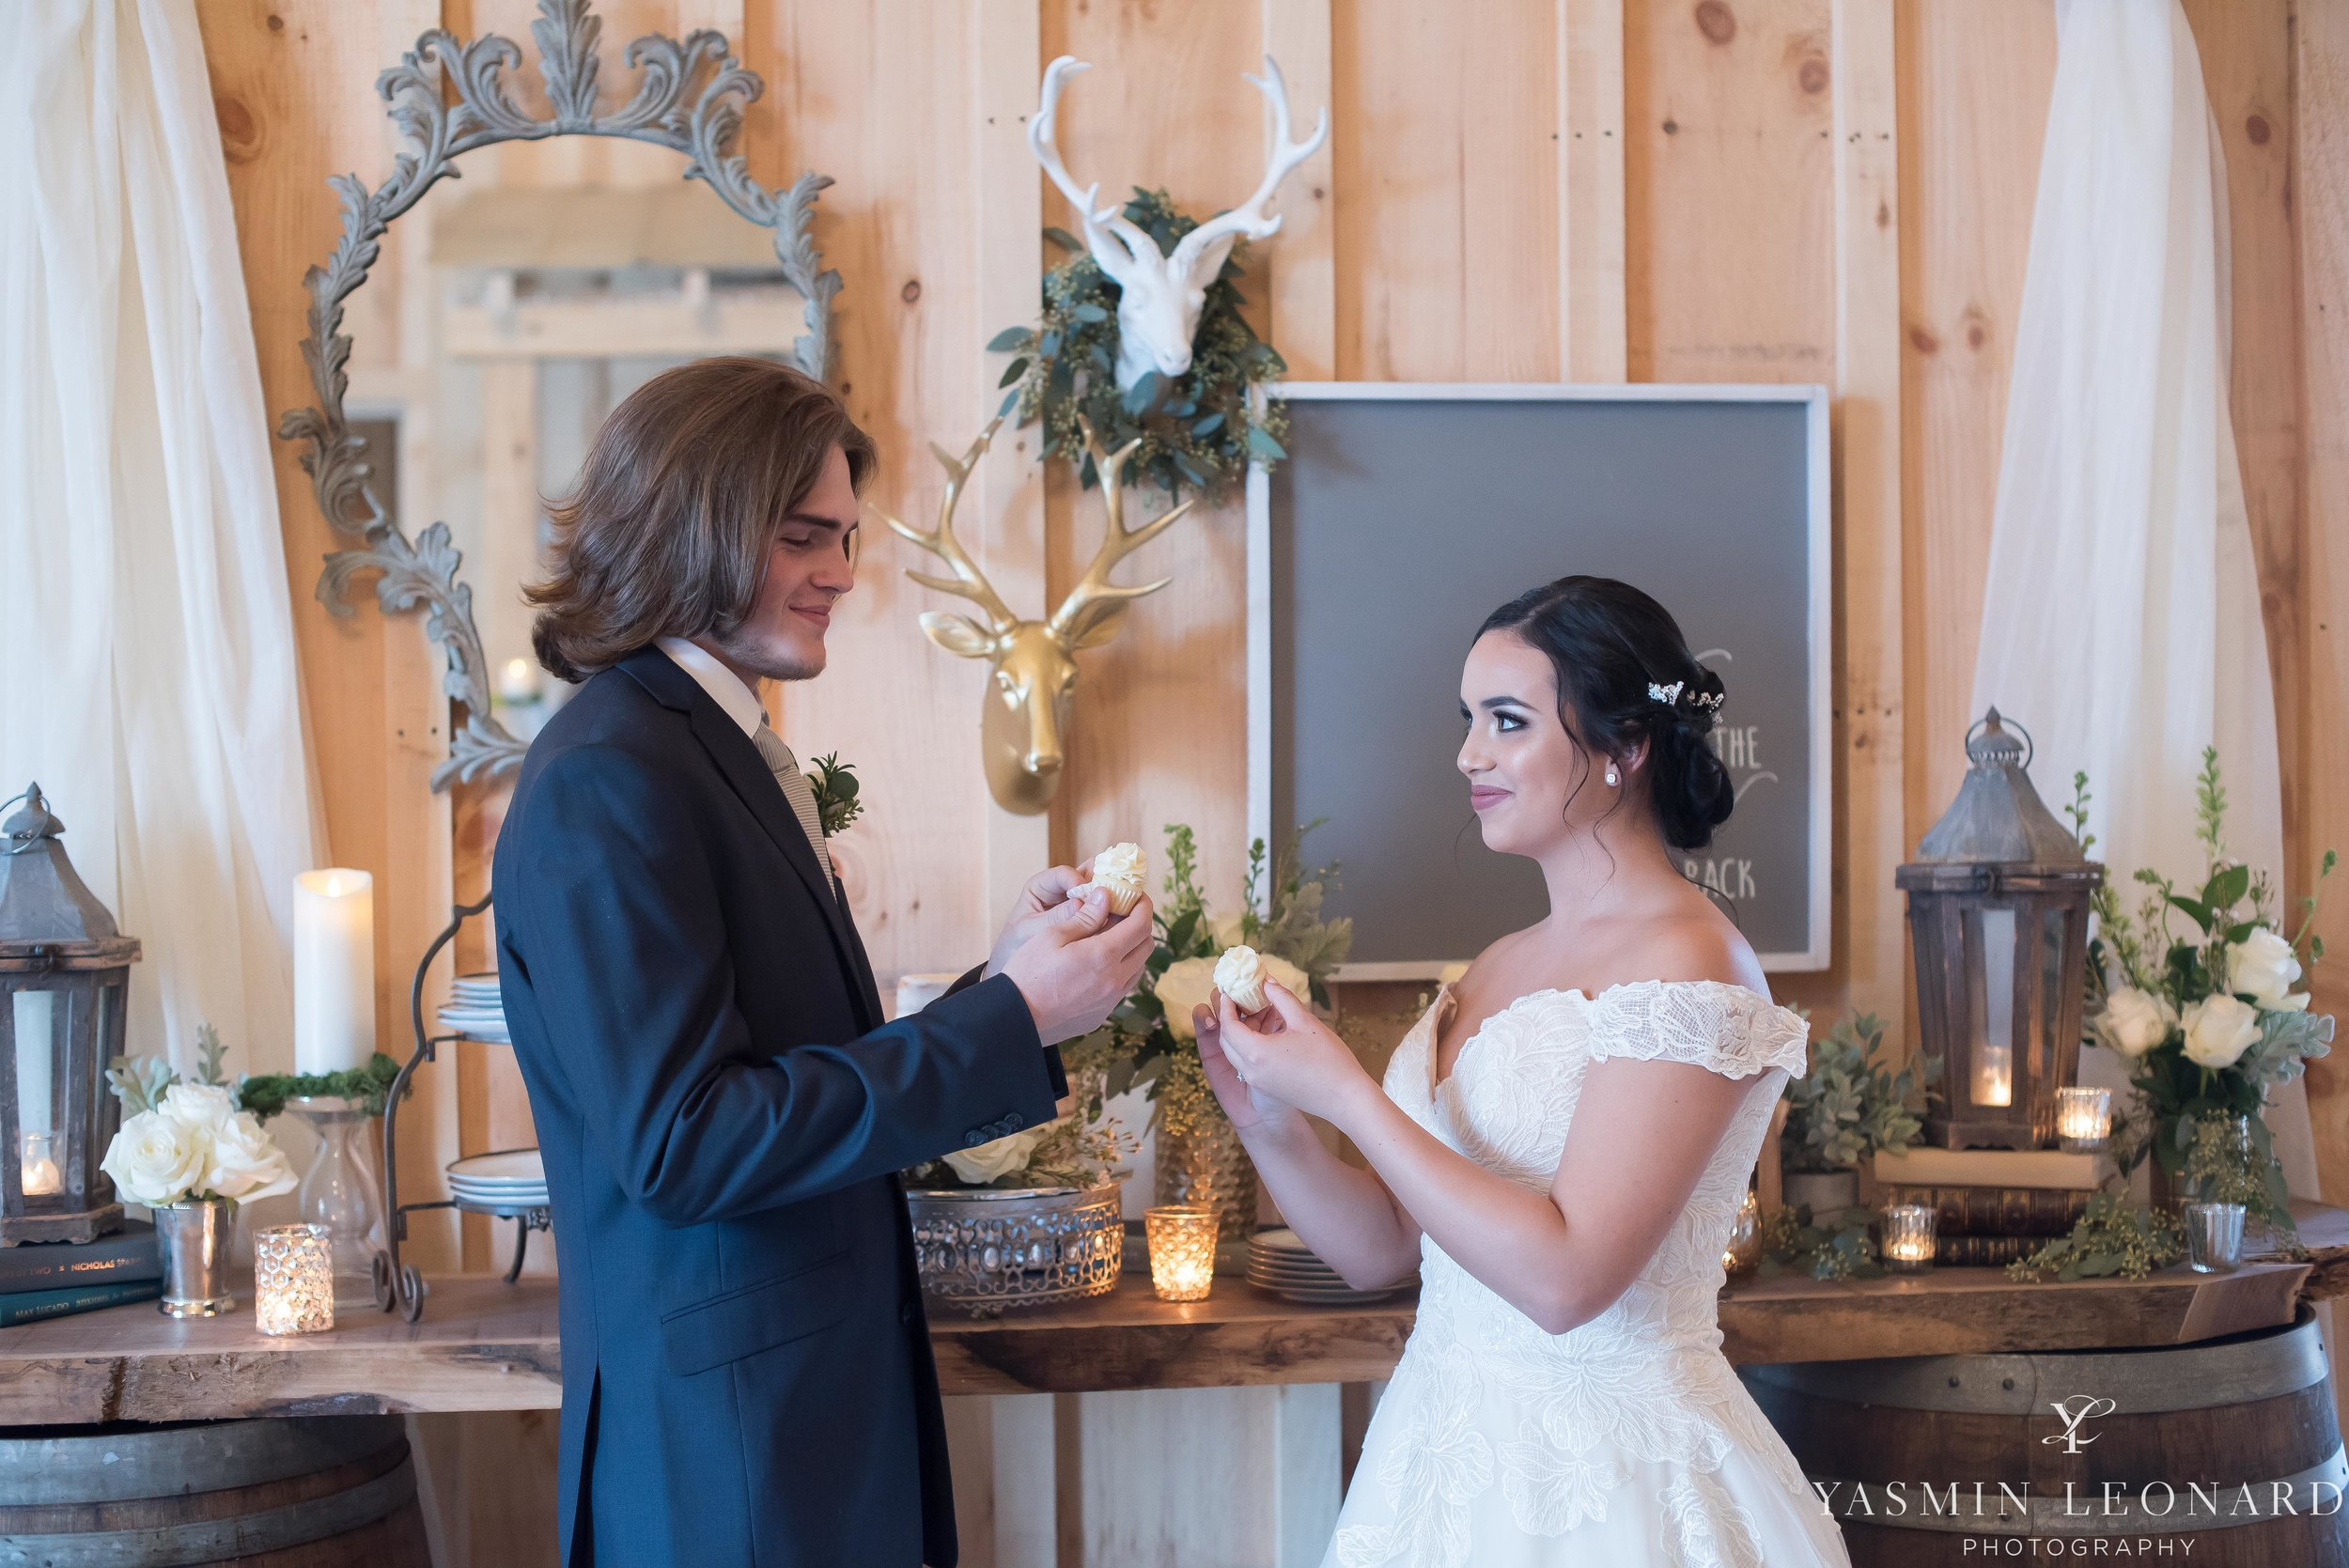 Old Homeplace Vineyard - Grits and Glitter - Dashing Dames Bridal Boutique - Just Priceless - Yasmin Leonard Photography - High Point Weddings - NC Weddings - NC Wedding Venues - High Point Jewelers - NC Wines - NC Vineyards - Cupcake Cuties-76.jpg